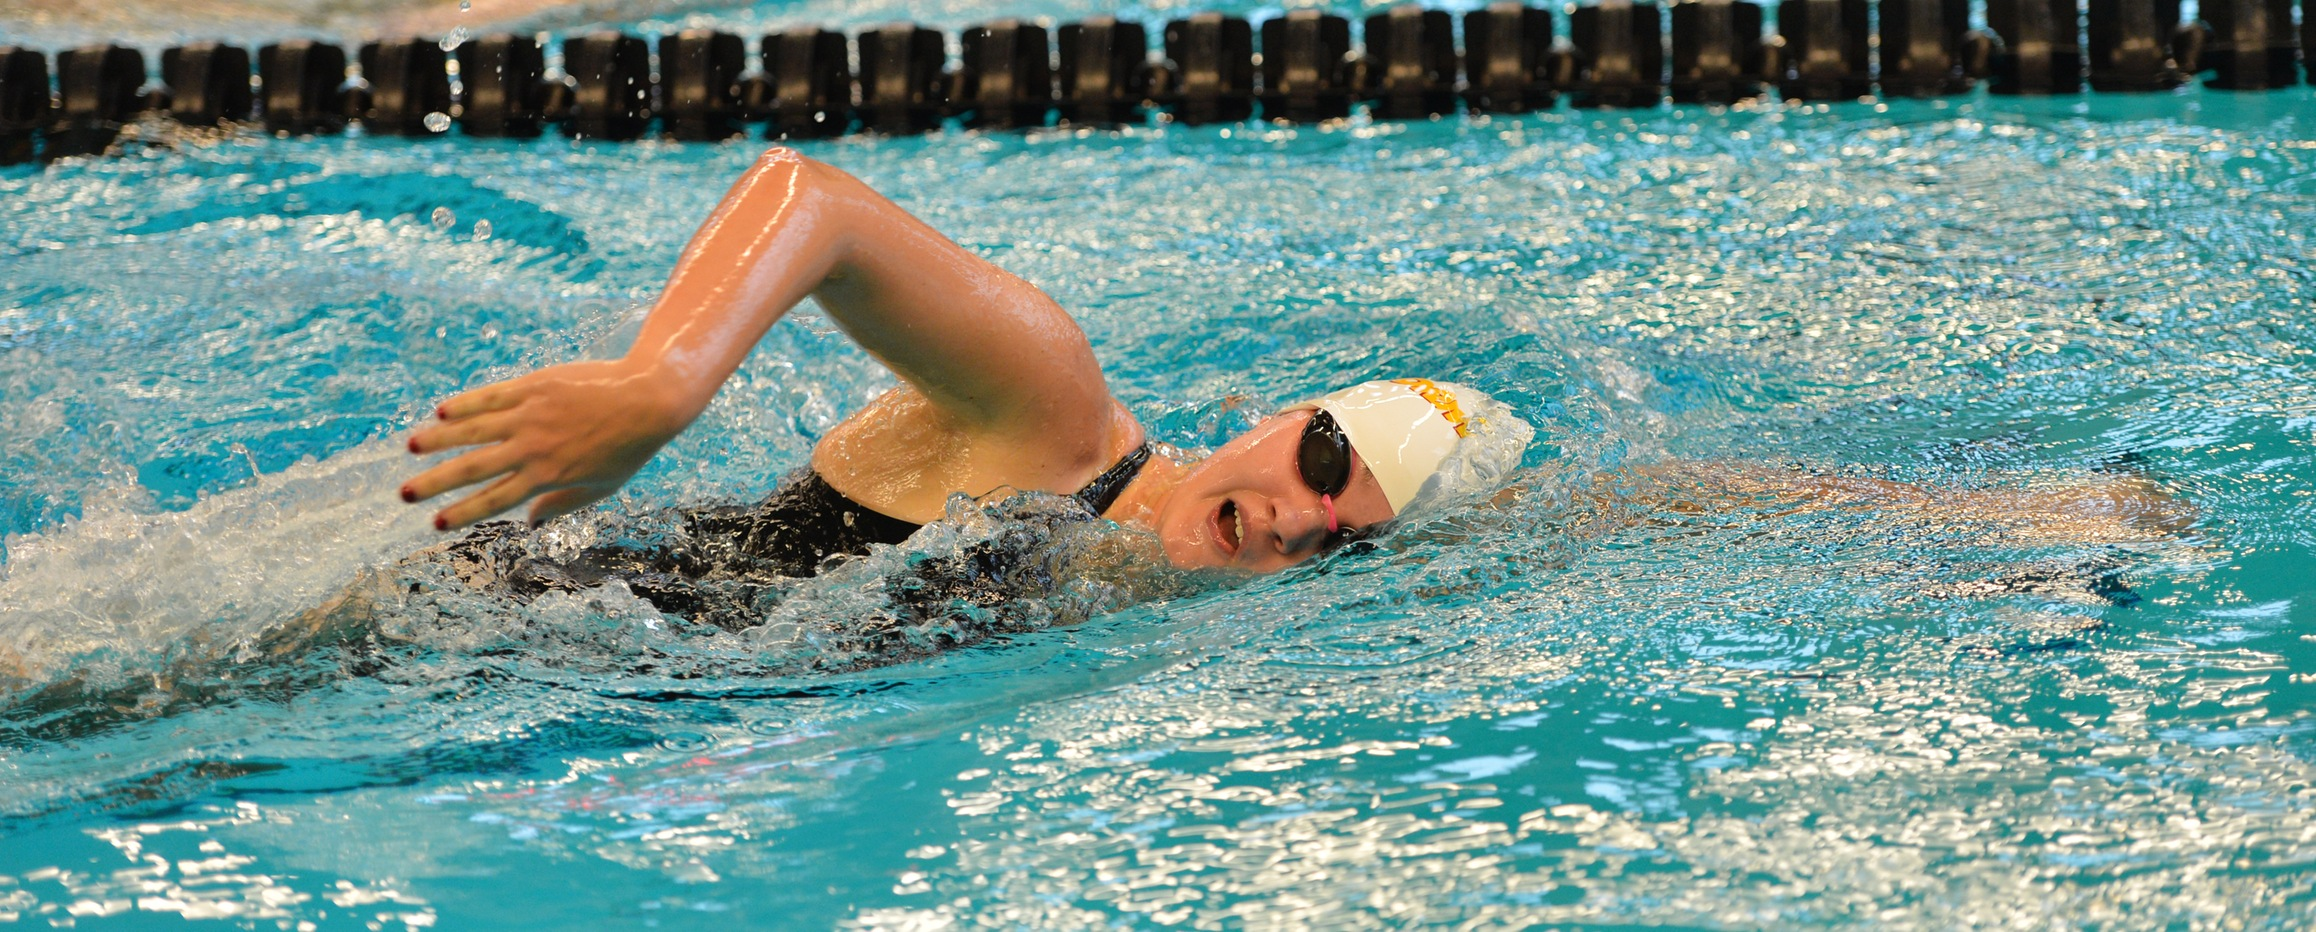 Storm swimmers break 18 school records at Liberal Arts Championships to finish season